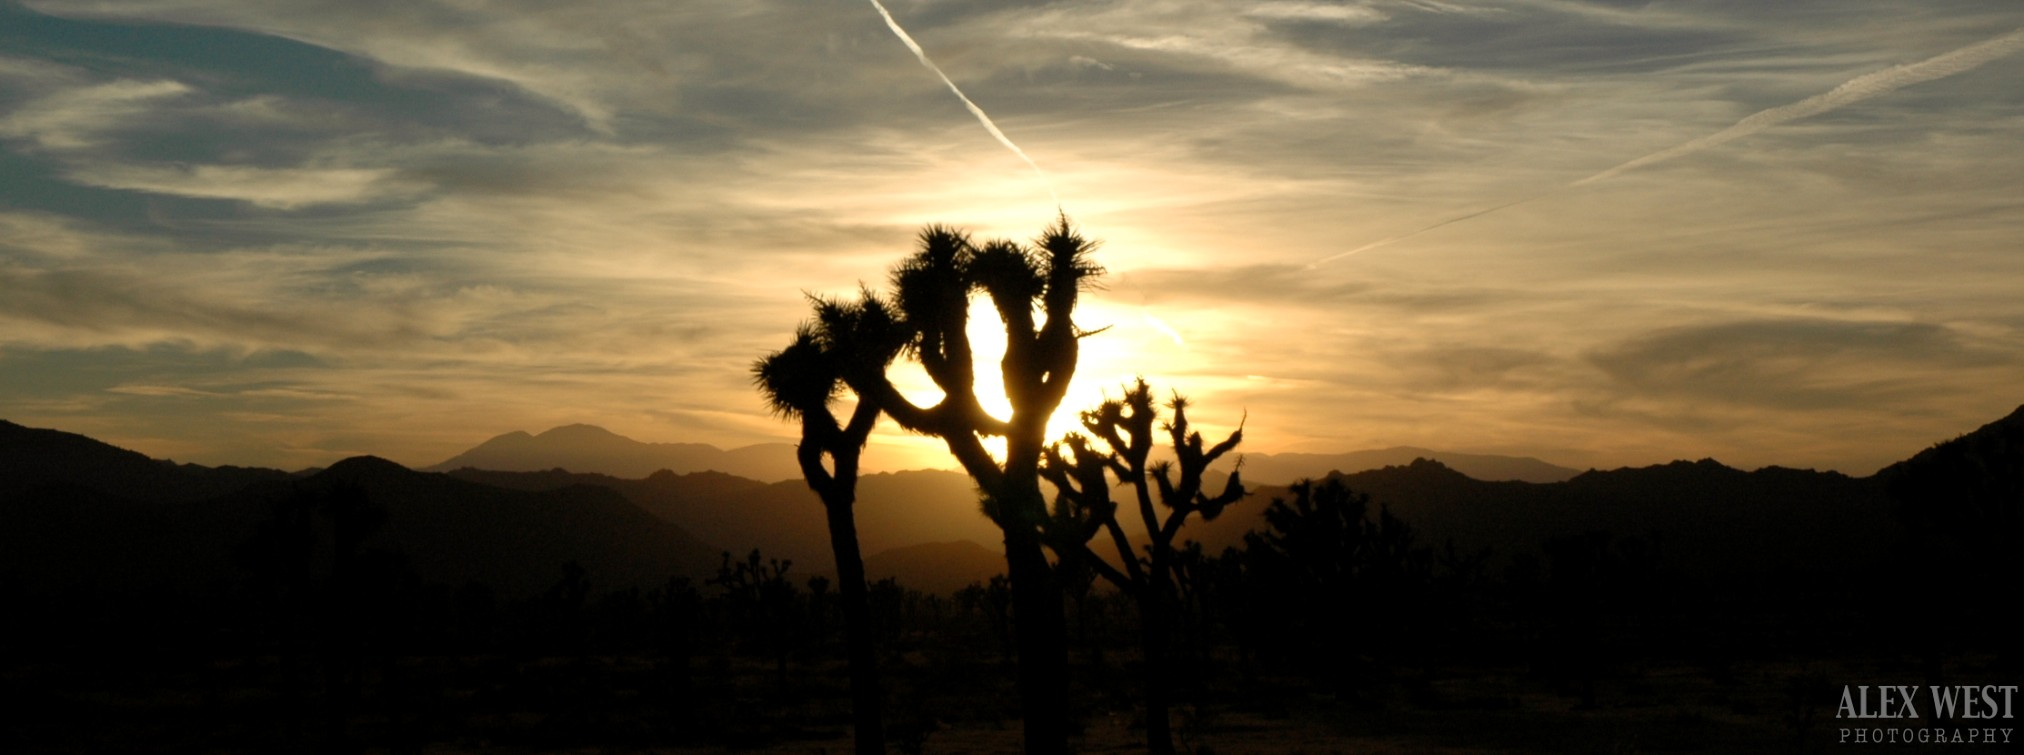 joshua-tree-landscape-photography